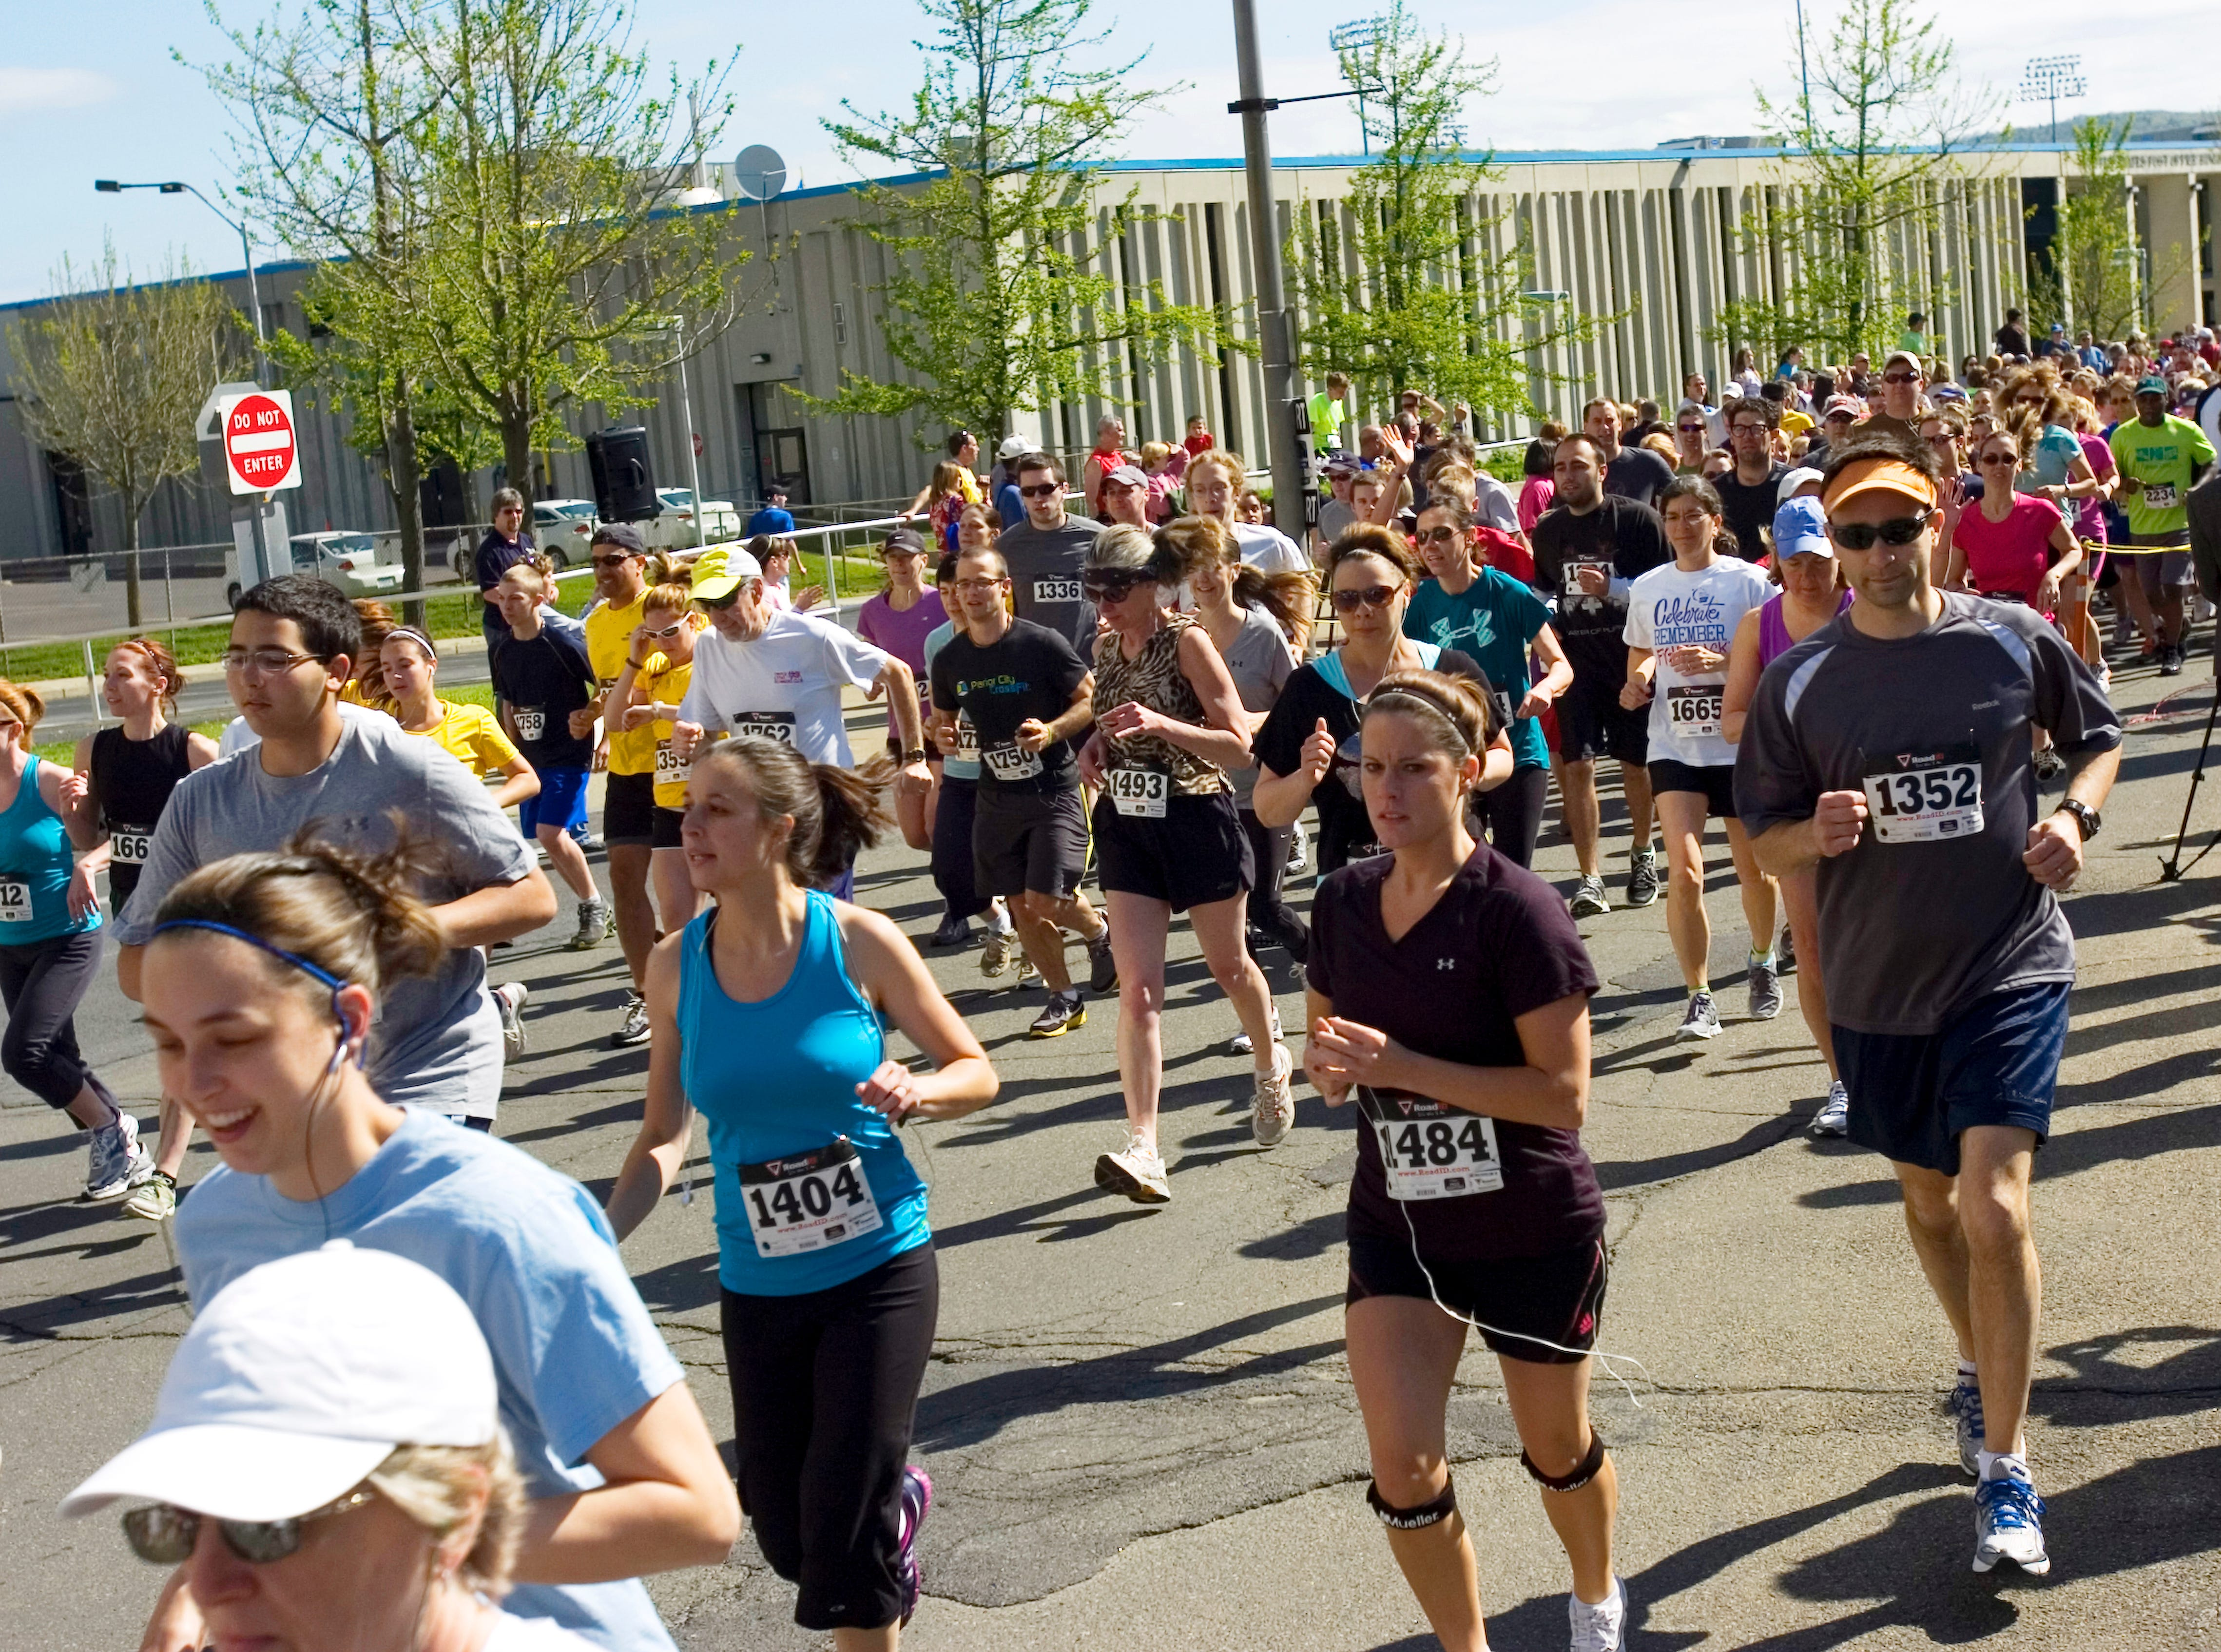 2012: The second annual Greater Binghamton Chamber of Commerce Bridge Run 5K is held Sunday in downtown Binghamton.